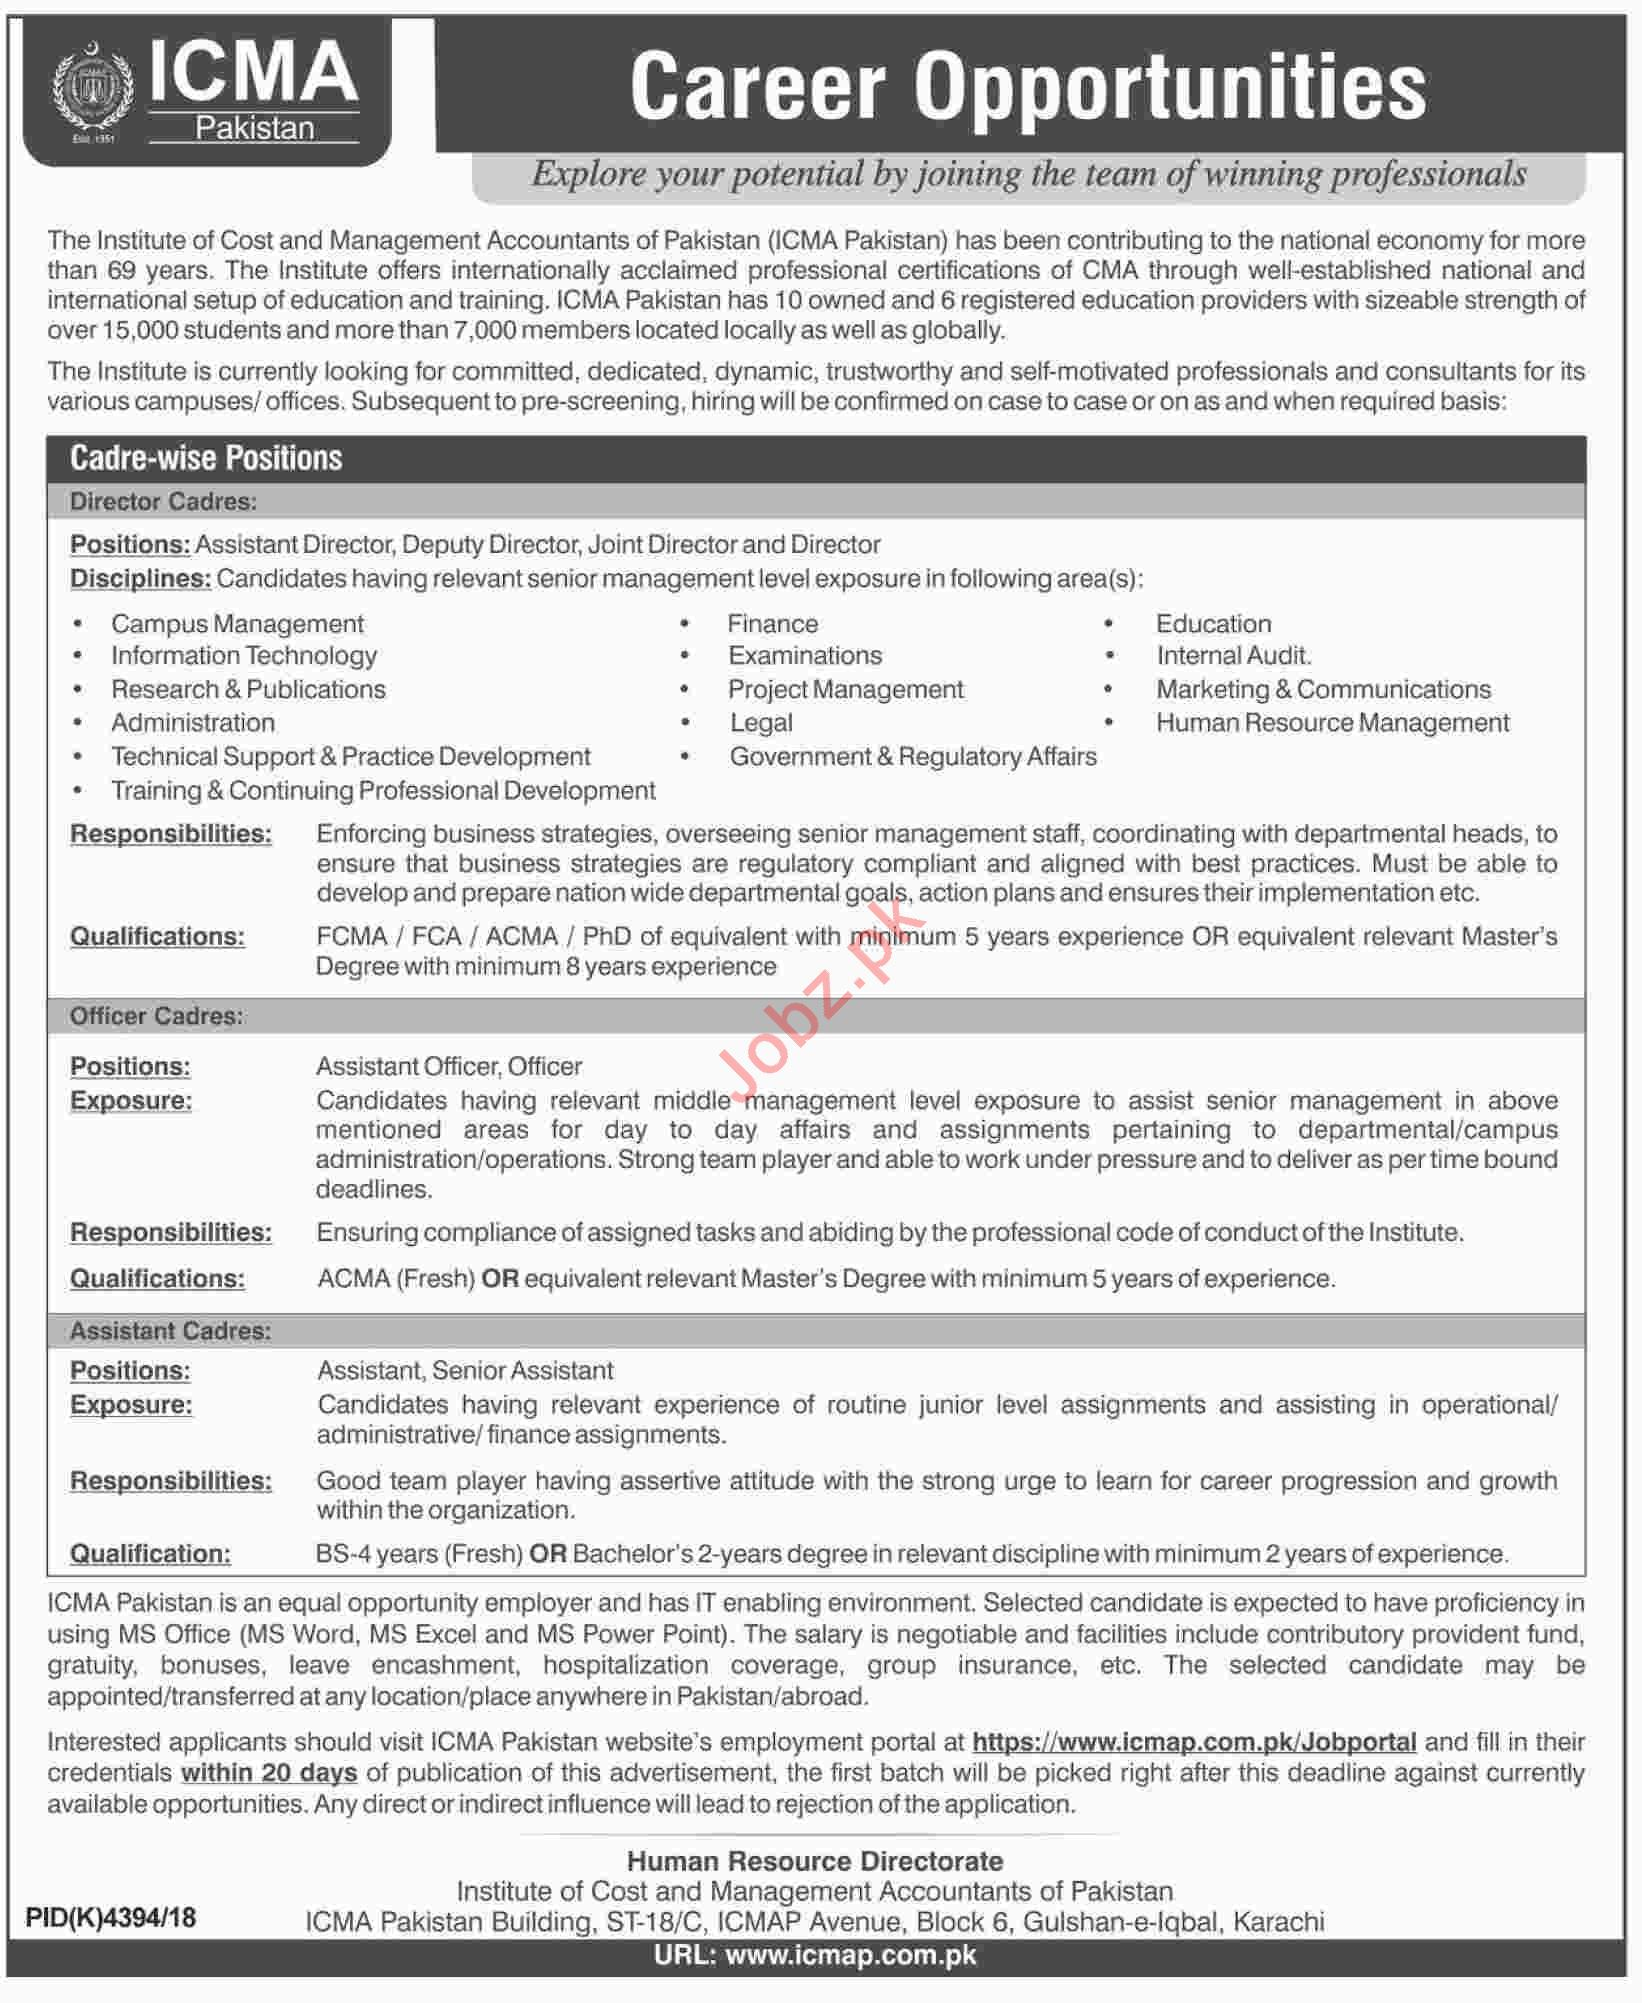 ICMA Pakistan Jobs 2019 for Director Cadres